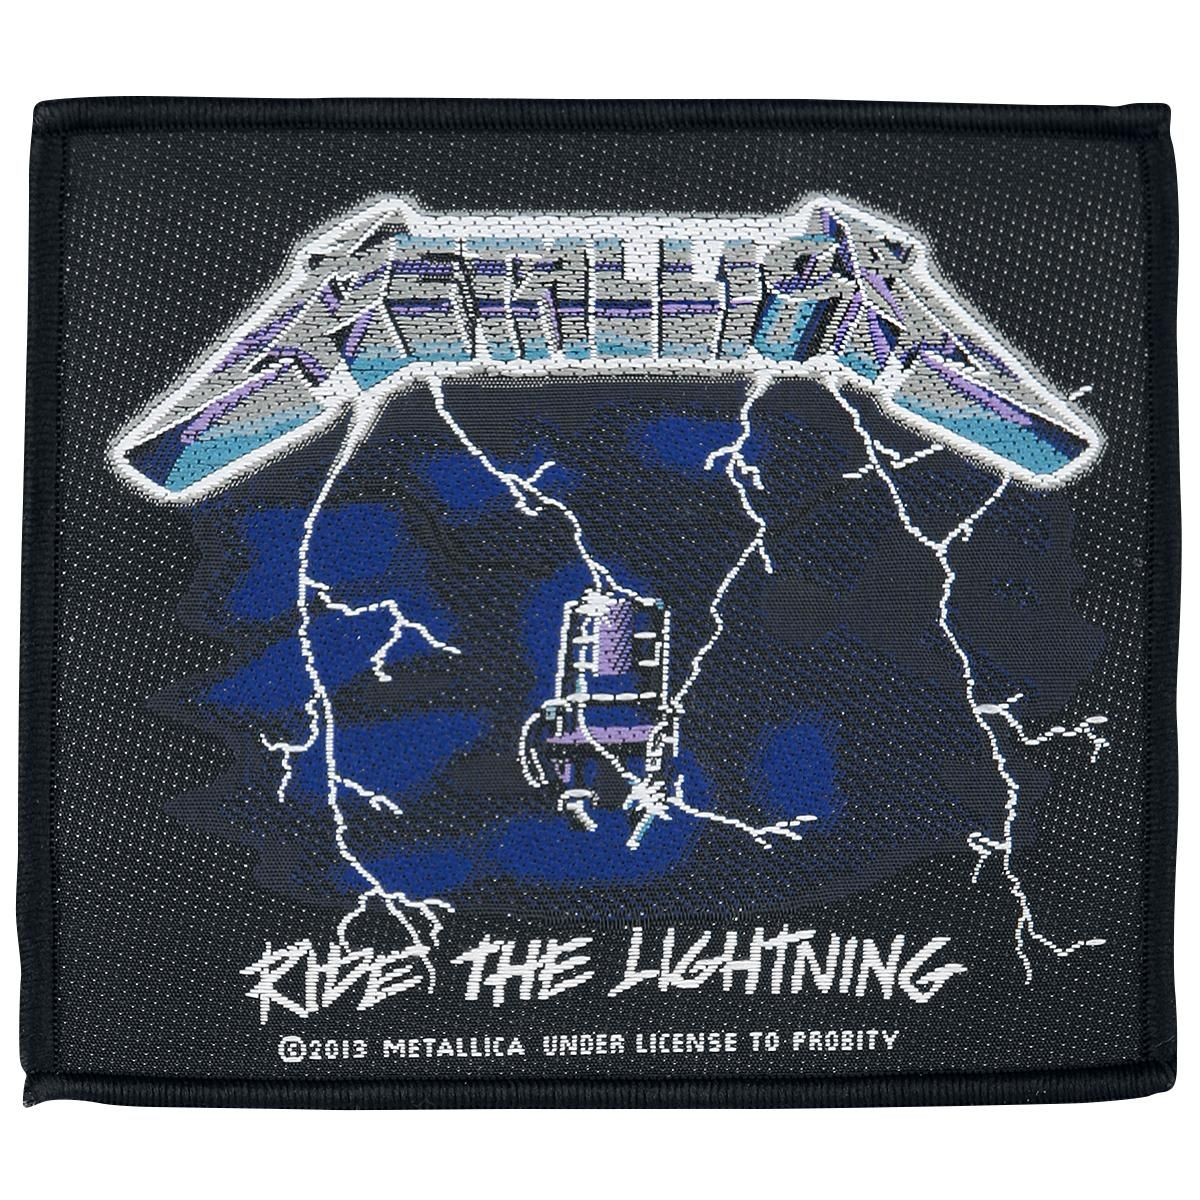 Ride the lightning - Patch by Metallica